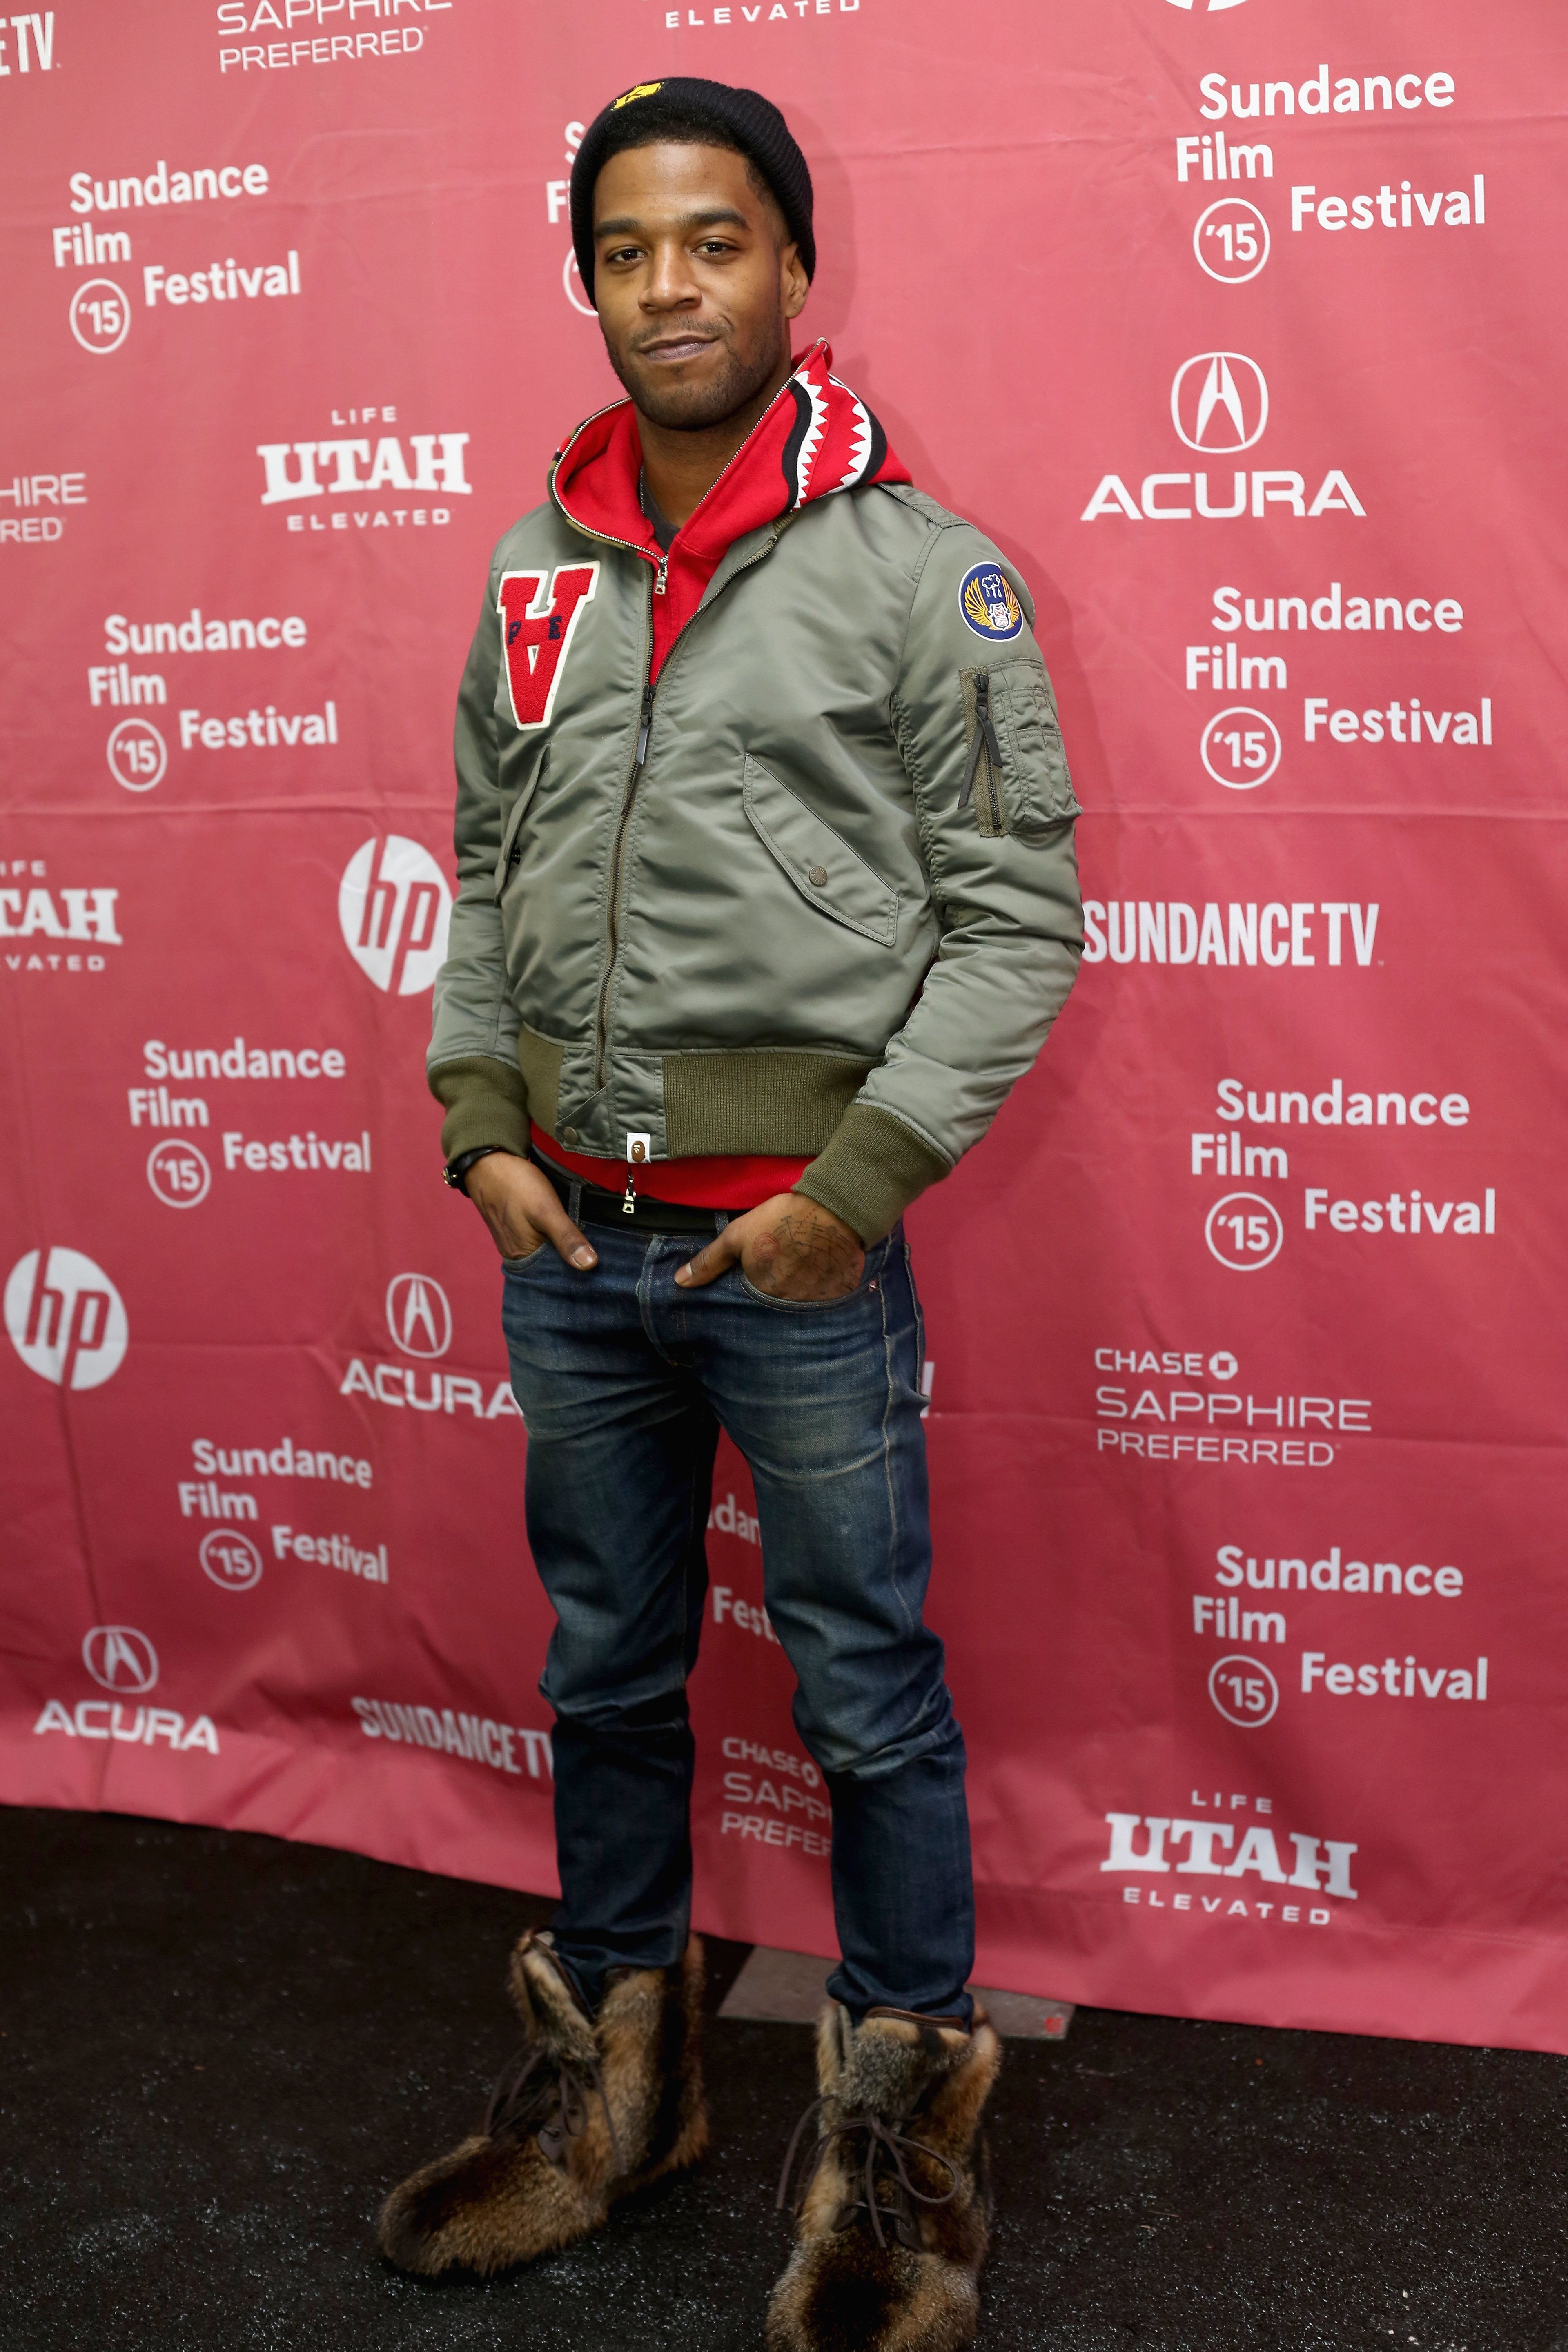 PARK CITY, UT - JANUARY 23:  Kid Cudi attends the  'James White' Premiere during the 2015 Sundance Film Festival at Library Center Theater on January 23, 2015 in Park City, Utah.  (Photo by Kim Raff/Getty Images for Sundance)